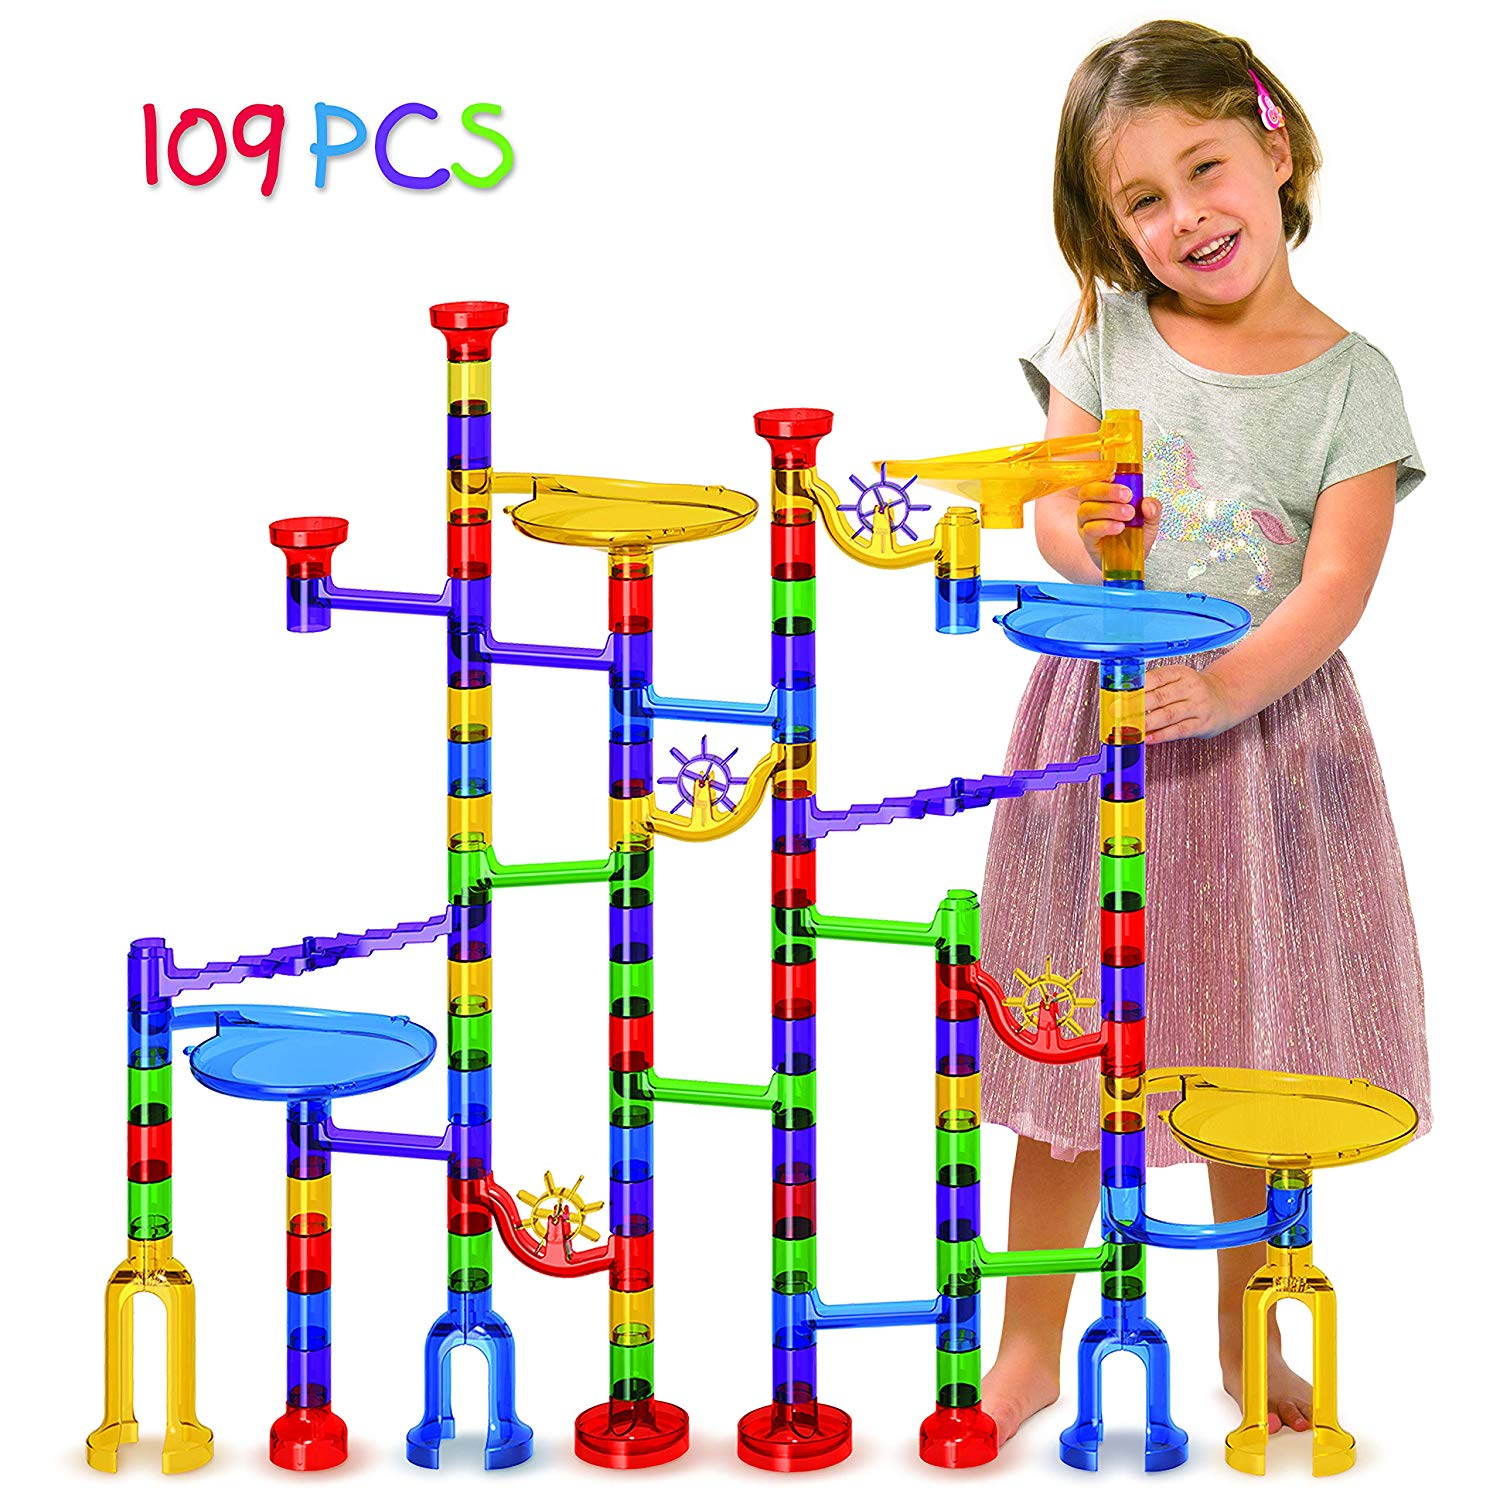 Tomi Toys Marble Run Super Set - 109 Pieces (84 Action Pieces + 25 Glass Marbles) - Marble Maze Race Track Game for Kids 4, 5, 6 Years Old and Up Marble Run Sets for Educational Learning - STEM Buil